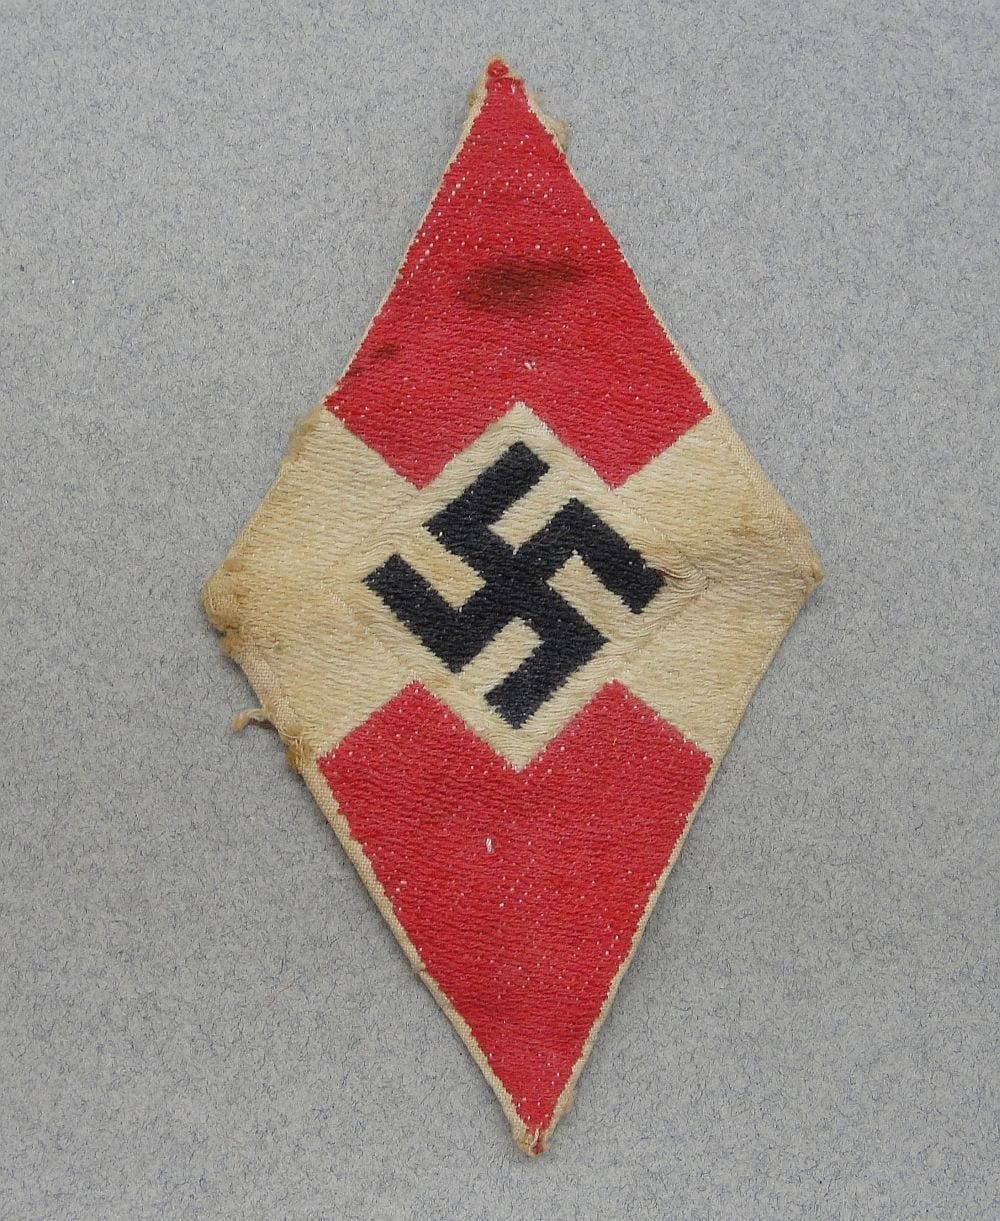 Hitler Youth Clothing Shield